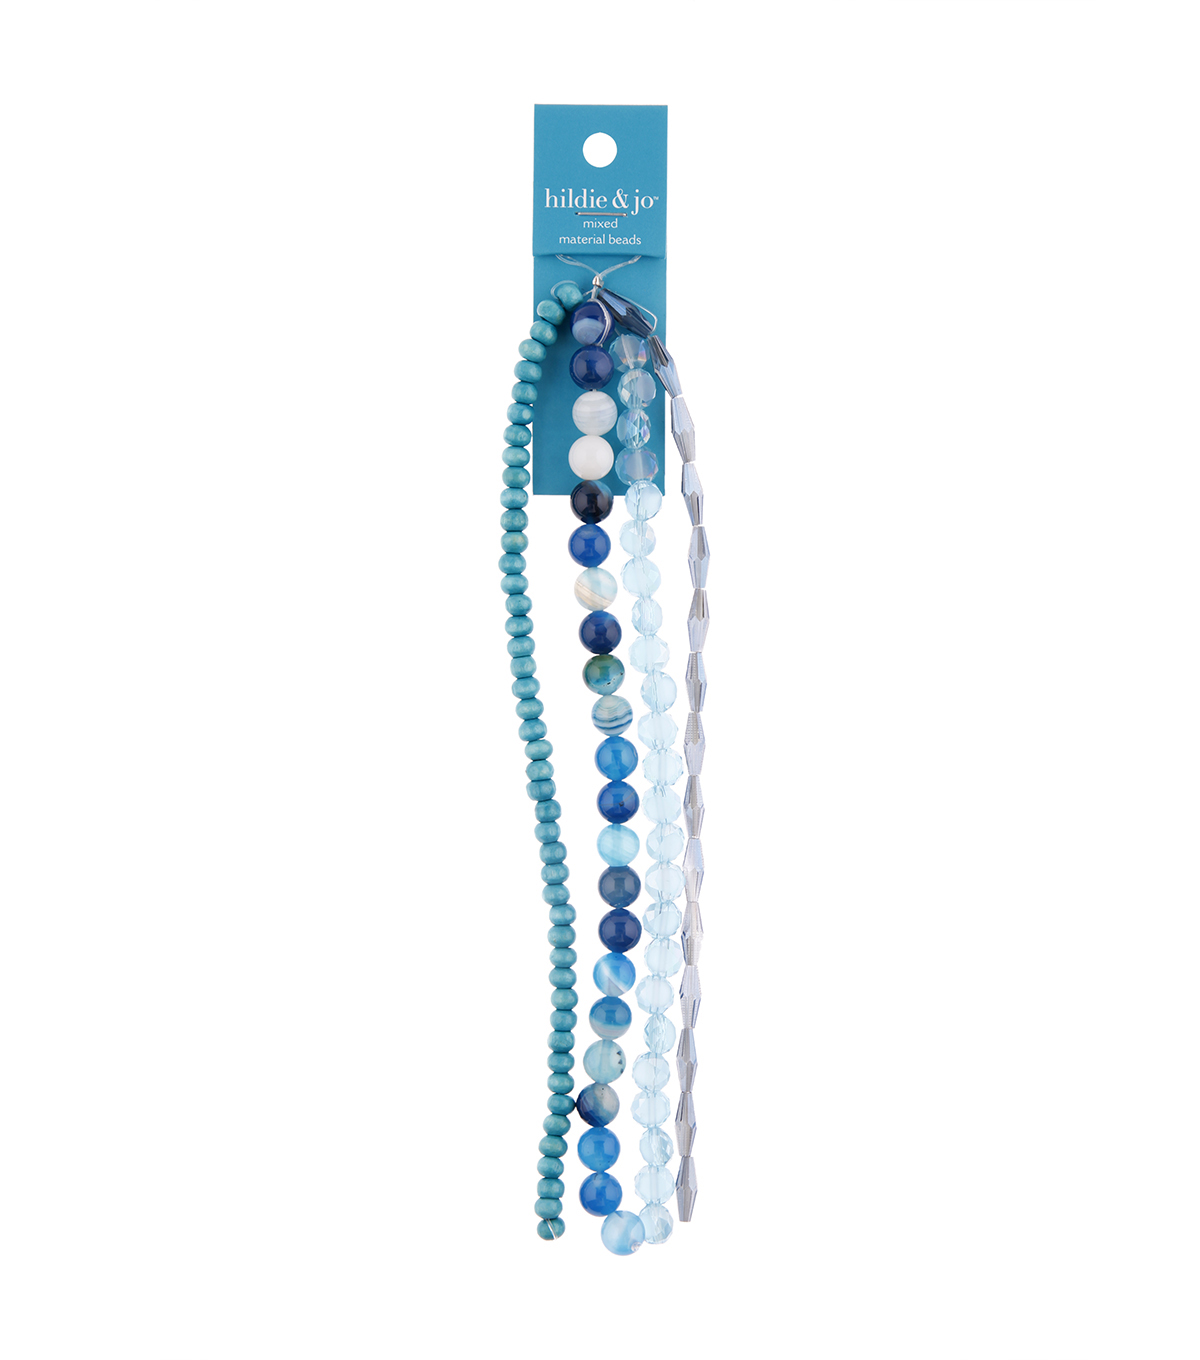 hildie & jo 26\u0022 Multi Strand Beads-Blue